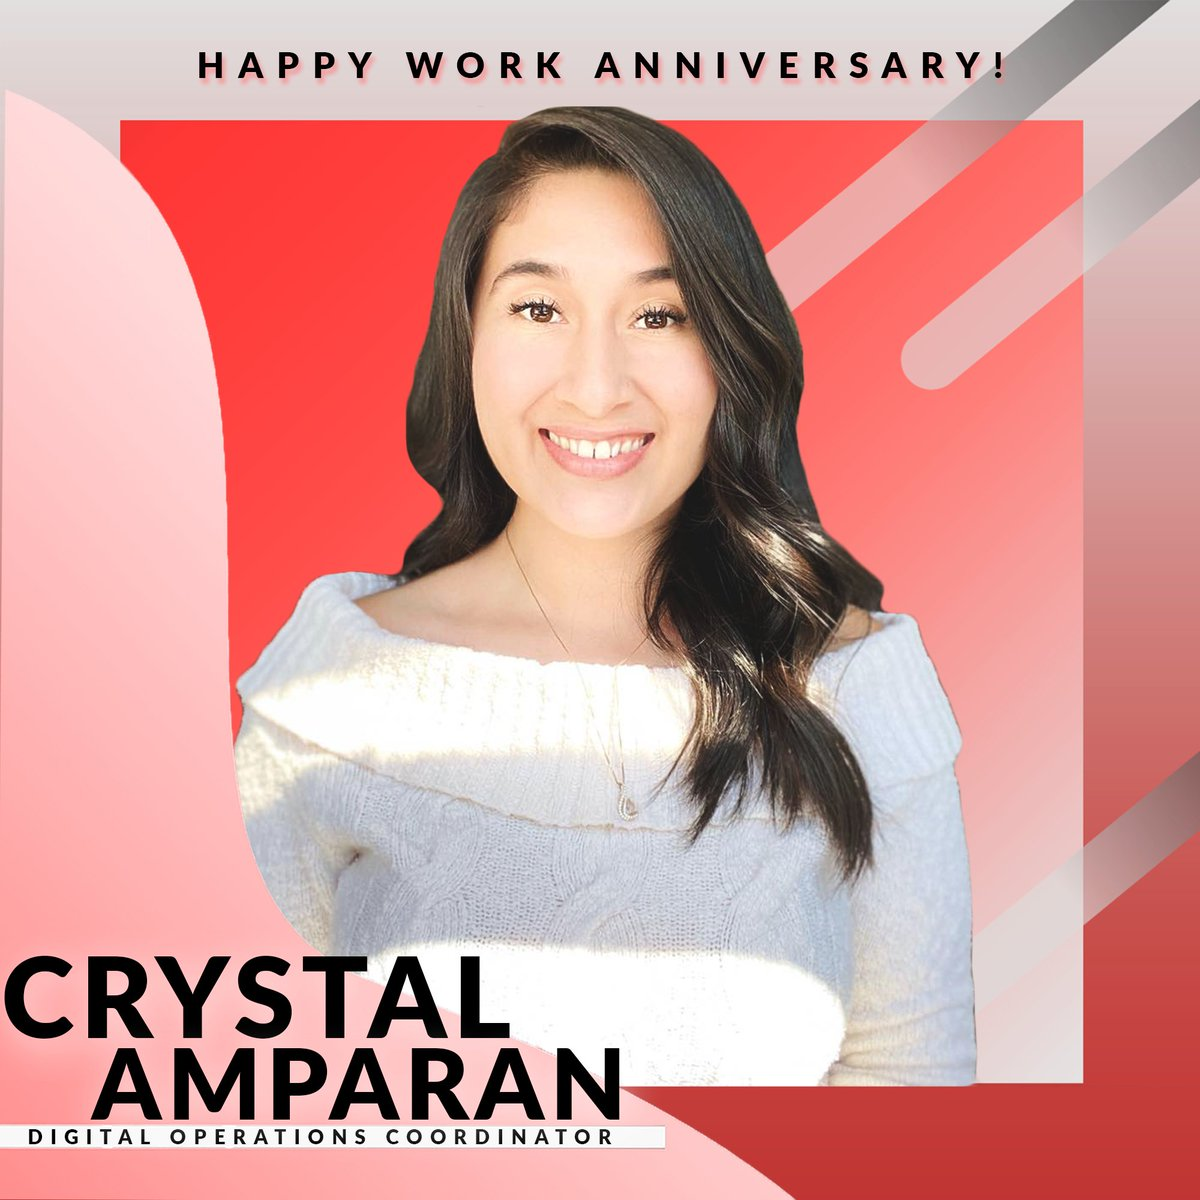 #HappyAnniversary to Crystal Amparan! It's been four years since she's started with VDS as an Account Manager and since has evolved into our Digital Operations Coordinator! This #bossbabe loves to go on runs, dance, and snuggle with her golden retriever, Summer! 🦮 #VDSLife